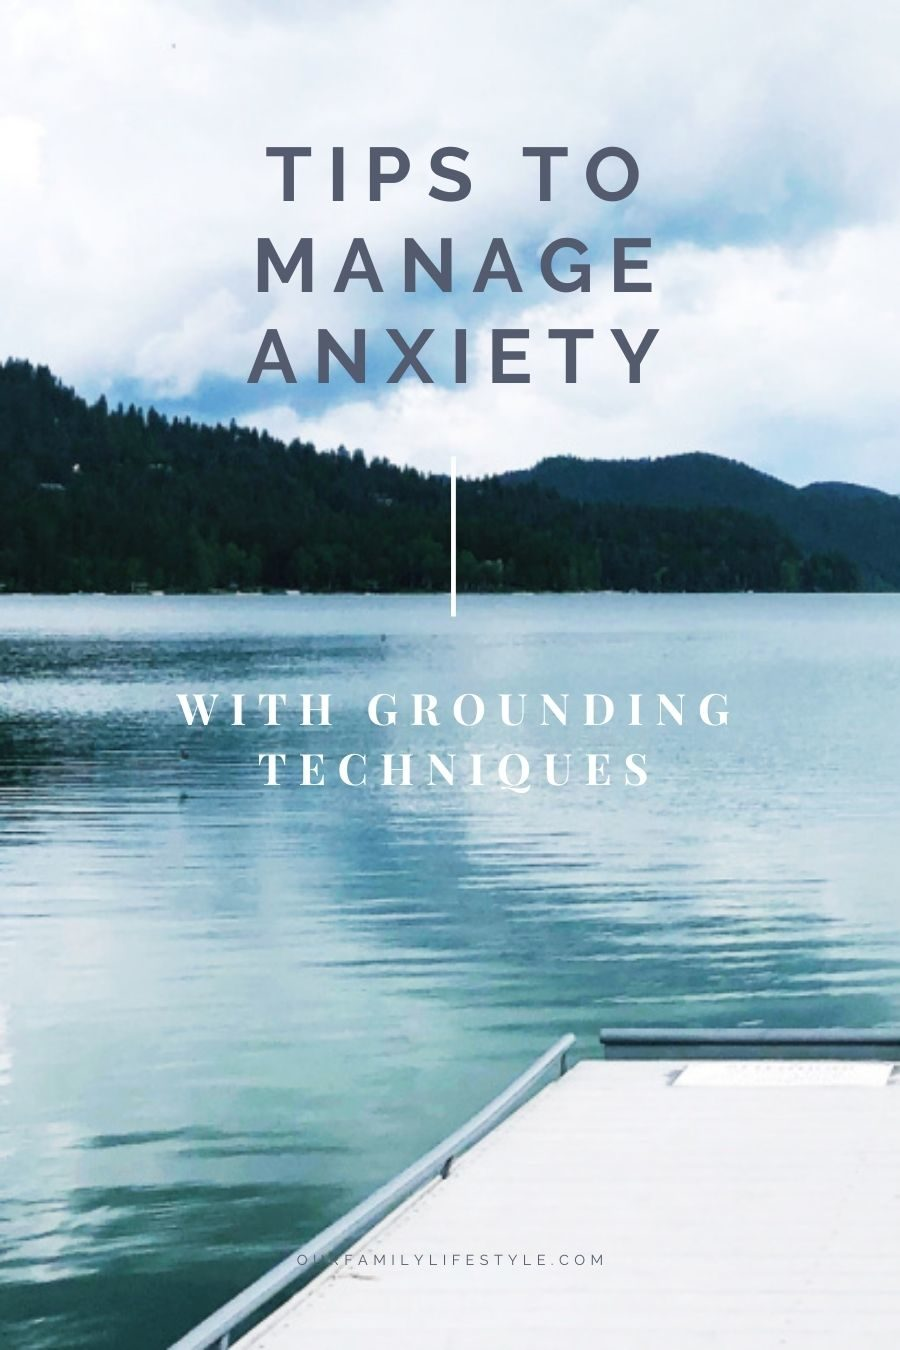 Tips to Manage Anxiety with Grounding and Breathing Techniques